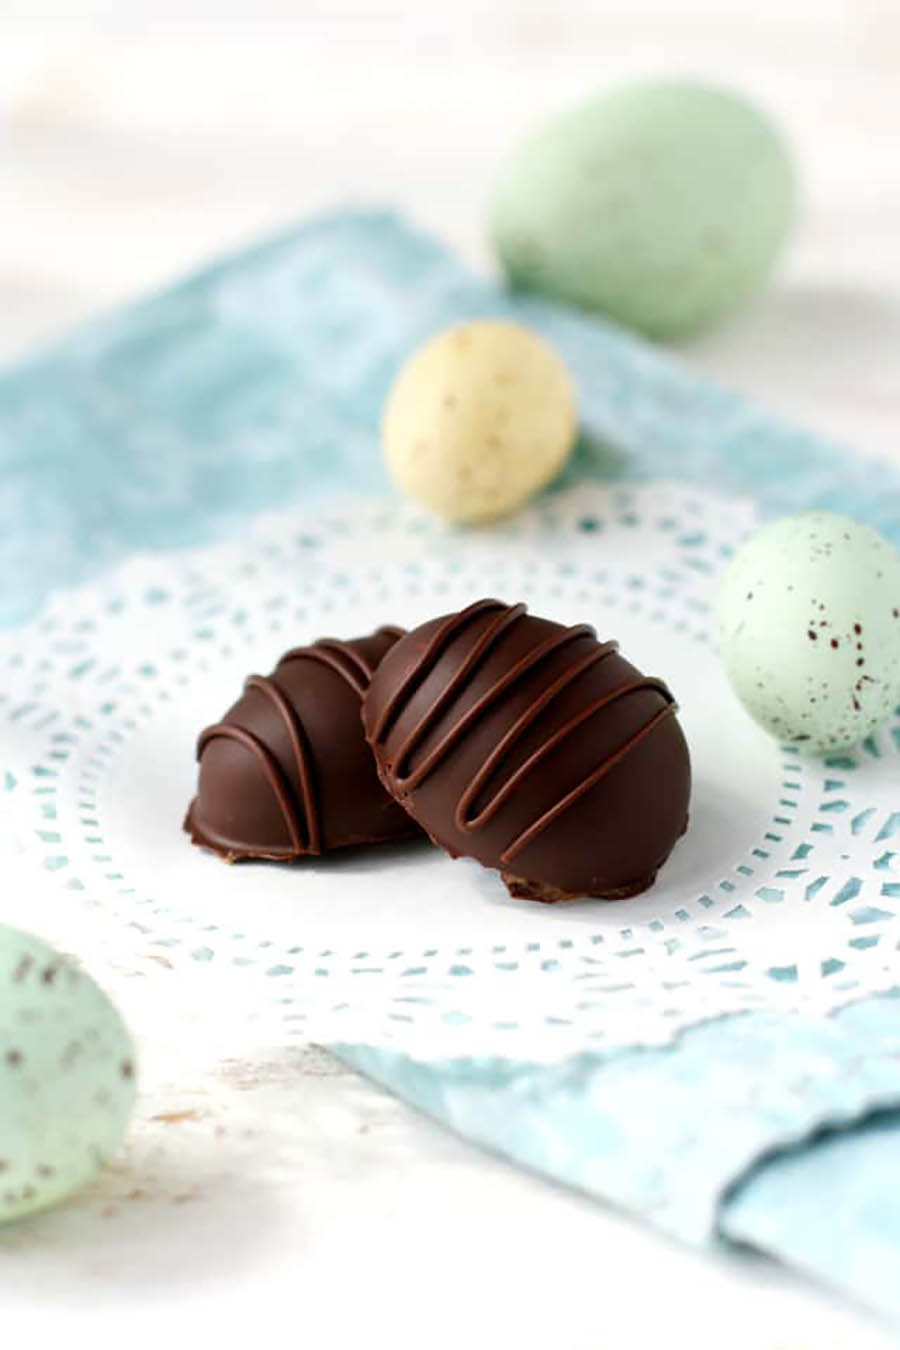 Two chocolate easter eggs sitting on a white doily which is placed on top of a light blue cloth napkin with a few pastel-colored eggs laying around.